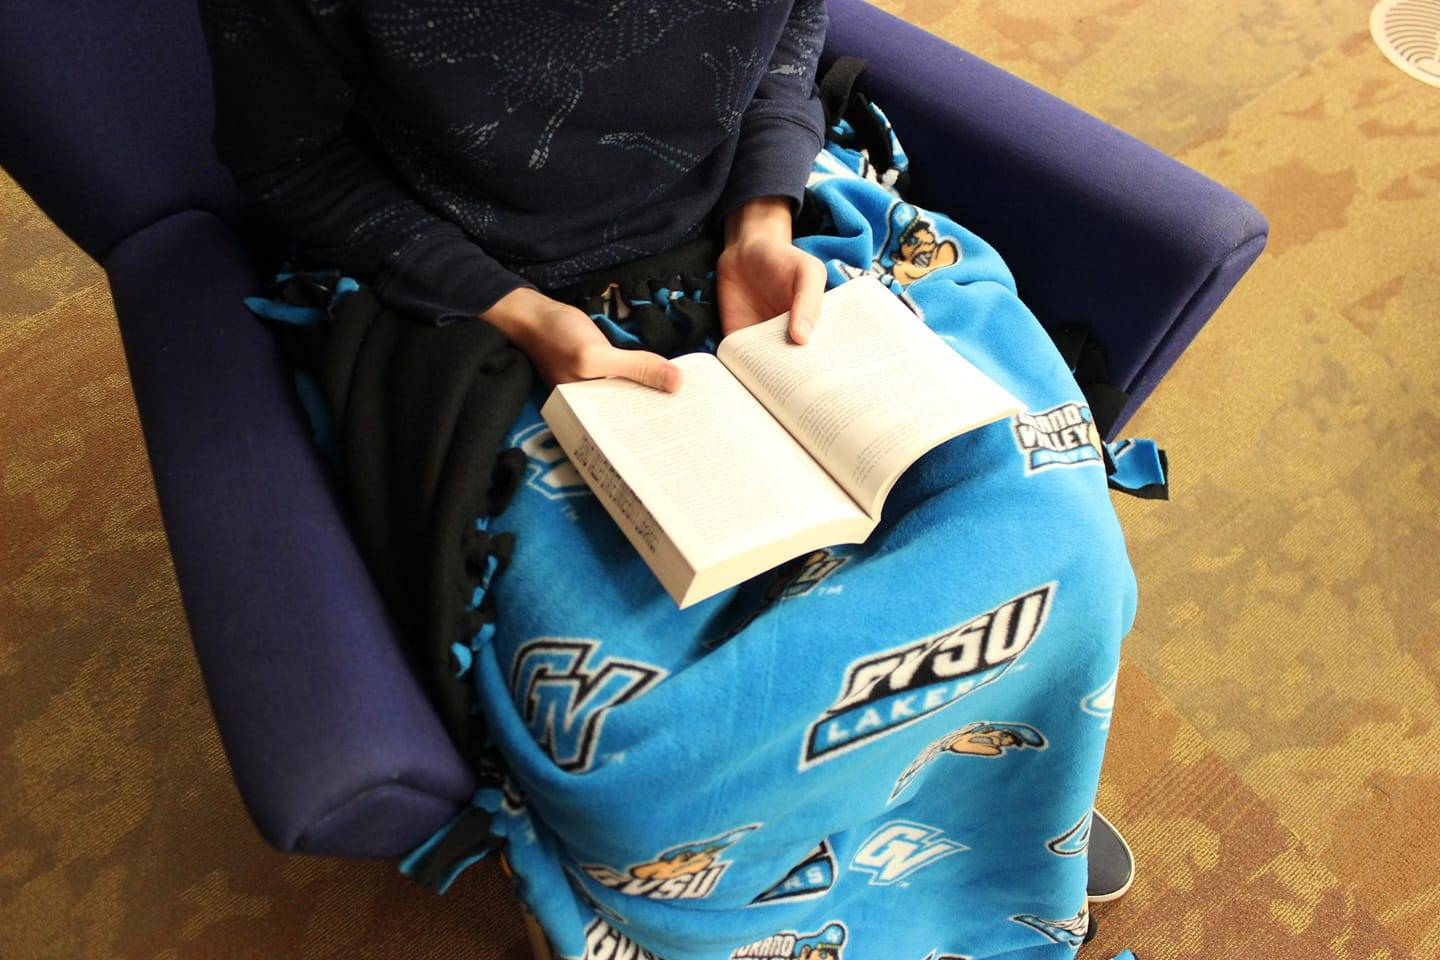 Person reading and wearing gvsu diy blanket